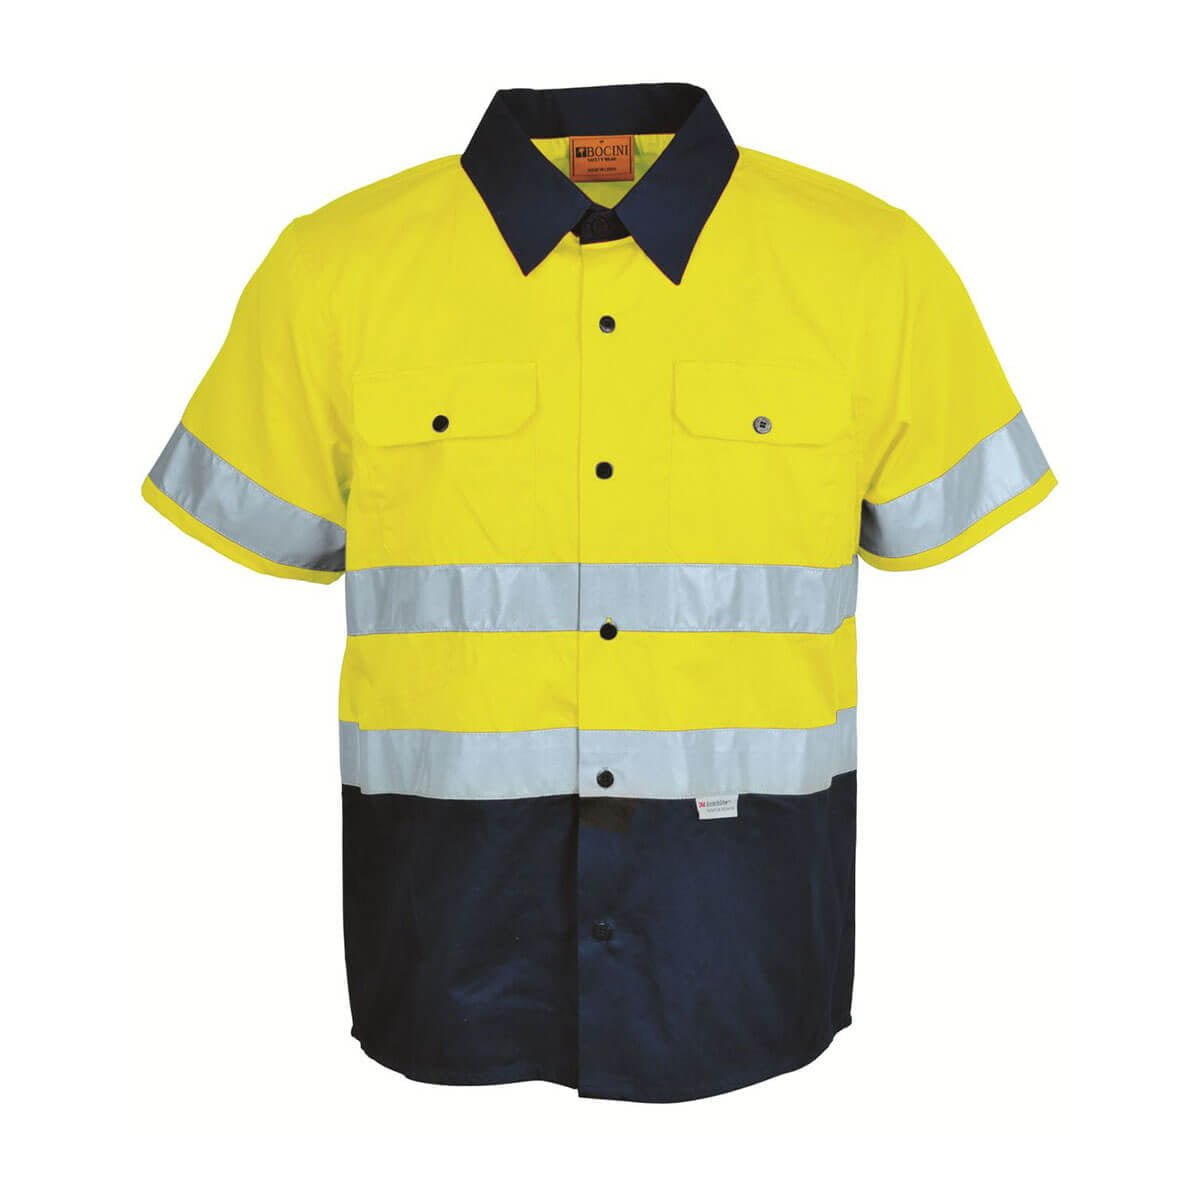 HI-VIS S/S COTTON DRILL SHIRT WITH TAPE-Lime / Navy